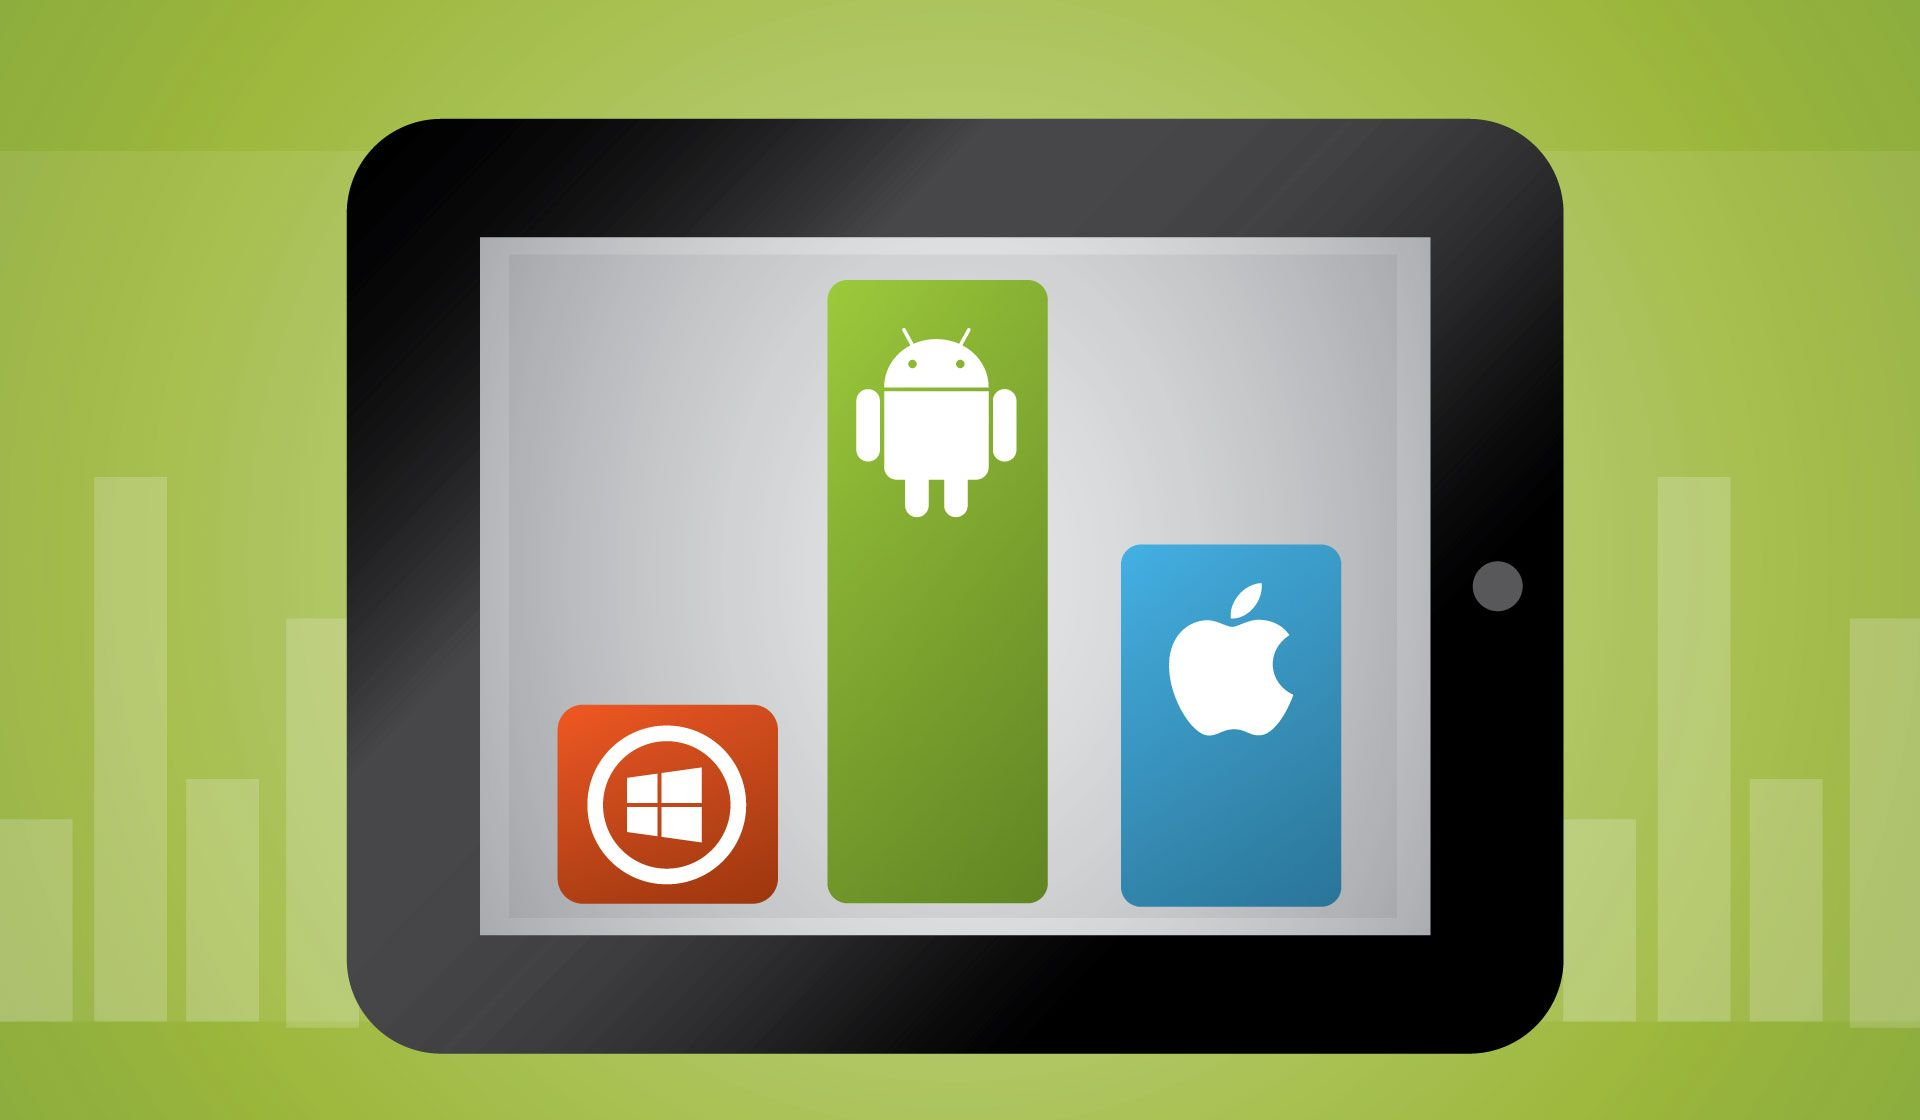 In 2014, #Android tablets had a whopping 72% of #tablet market share! Read on for more details! #mobile